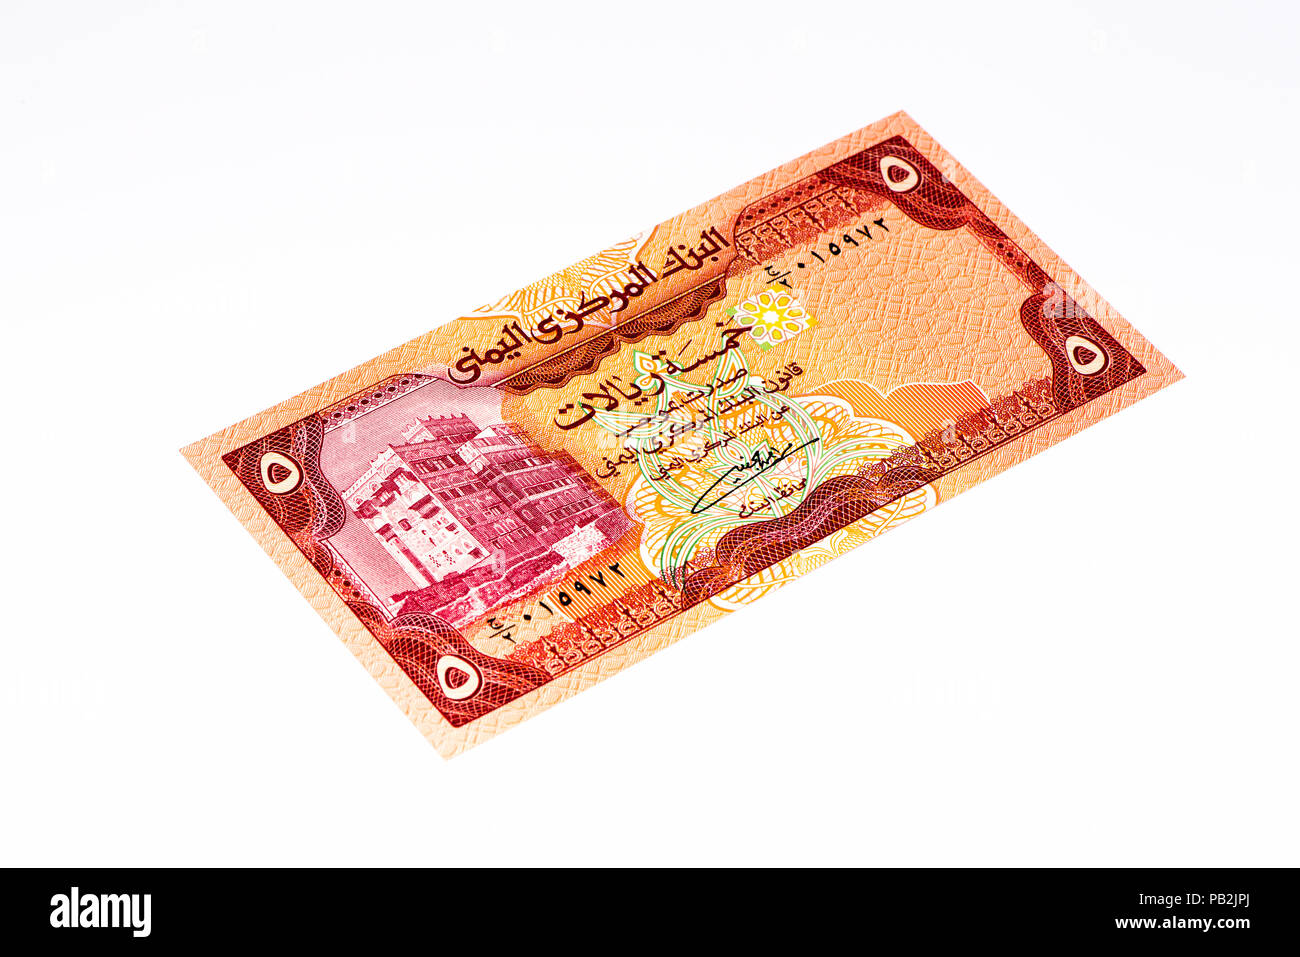 5 Yemeni rial bank note. Rial is the national currency of Yemen - Stock Image